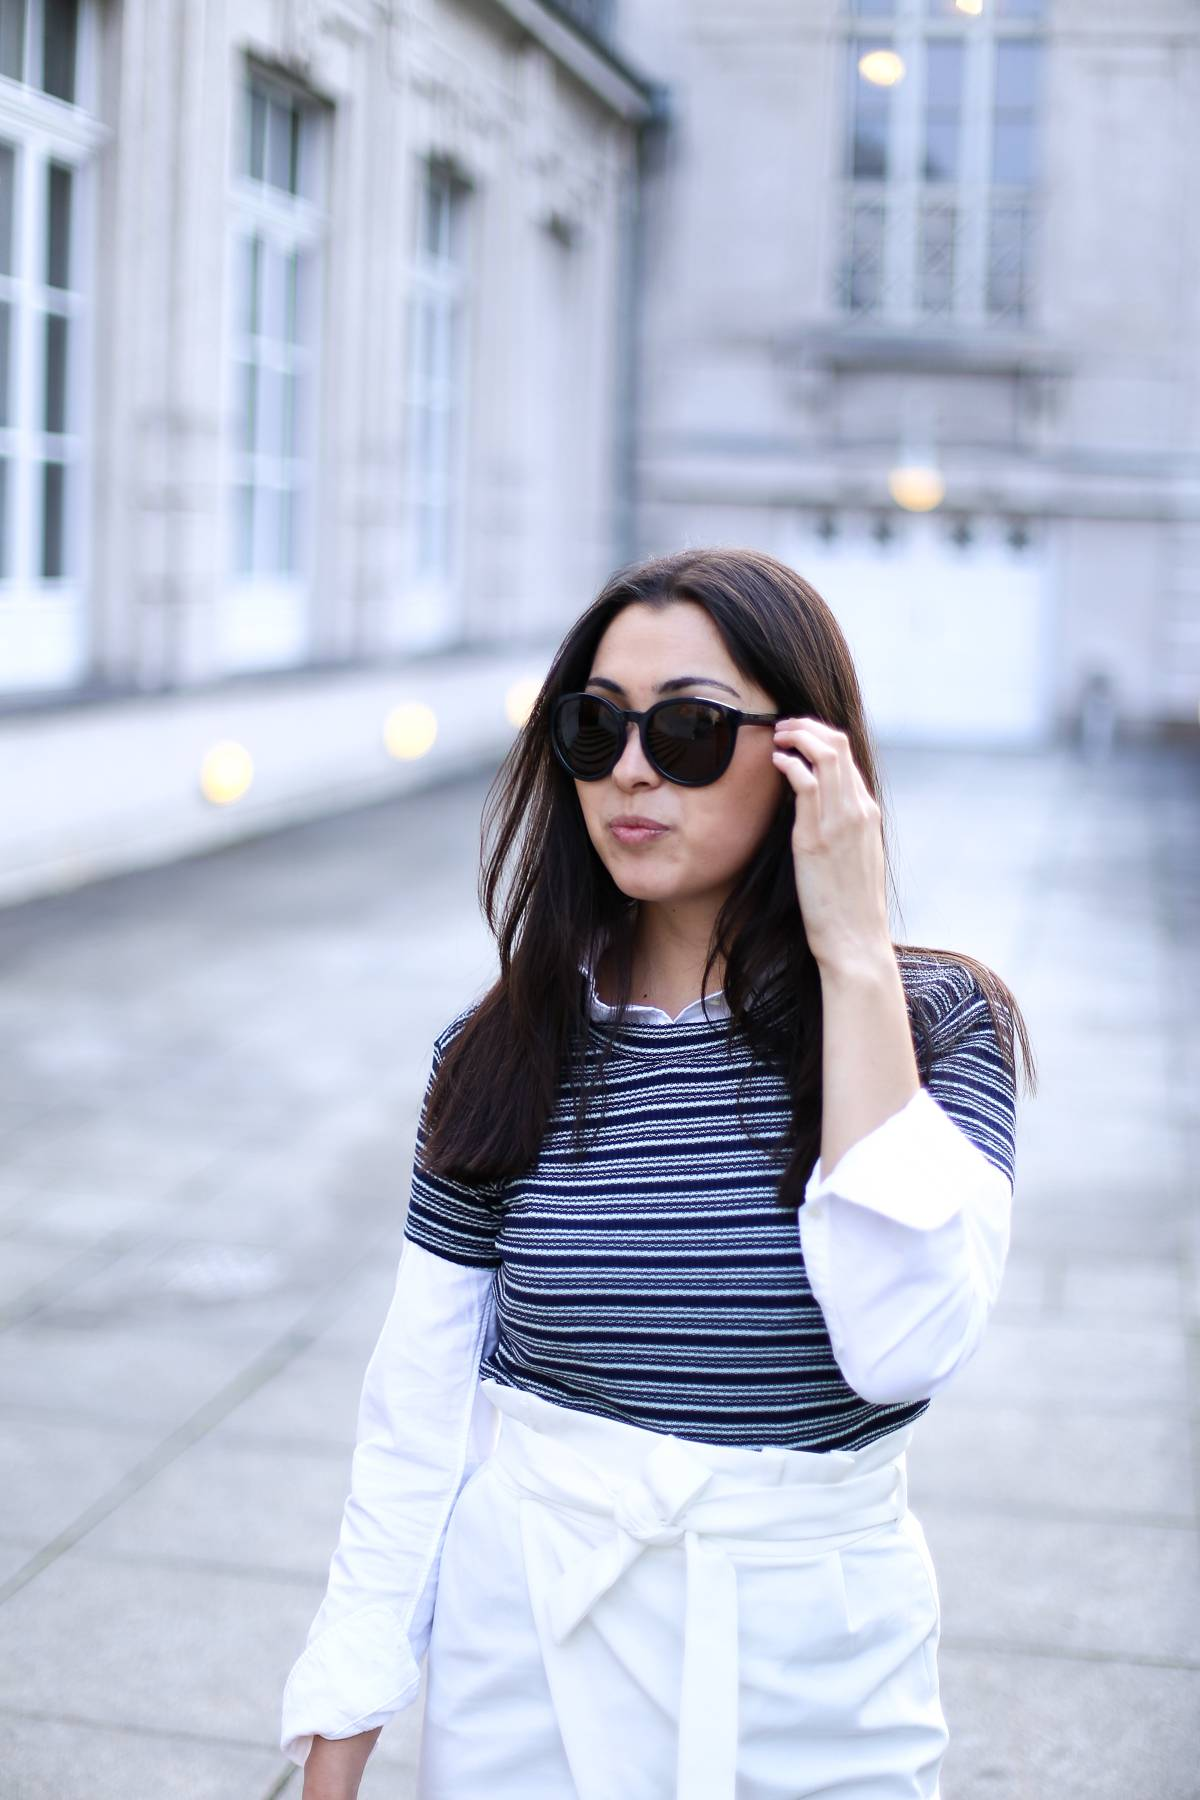 Stripes - Midi Dress - Zara - Casual - Ootd - Streetstyle Munich - German Fashionblog - White Sneaker - Calvin Klein Sunnies - Layering - Prinzregentenplatz